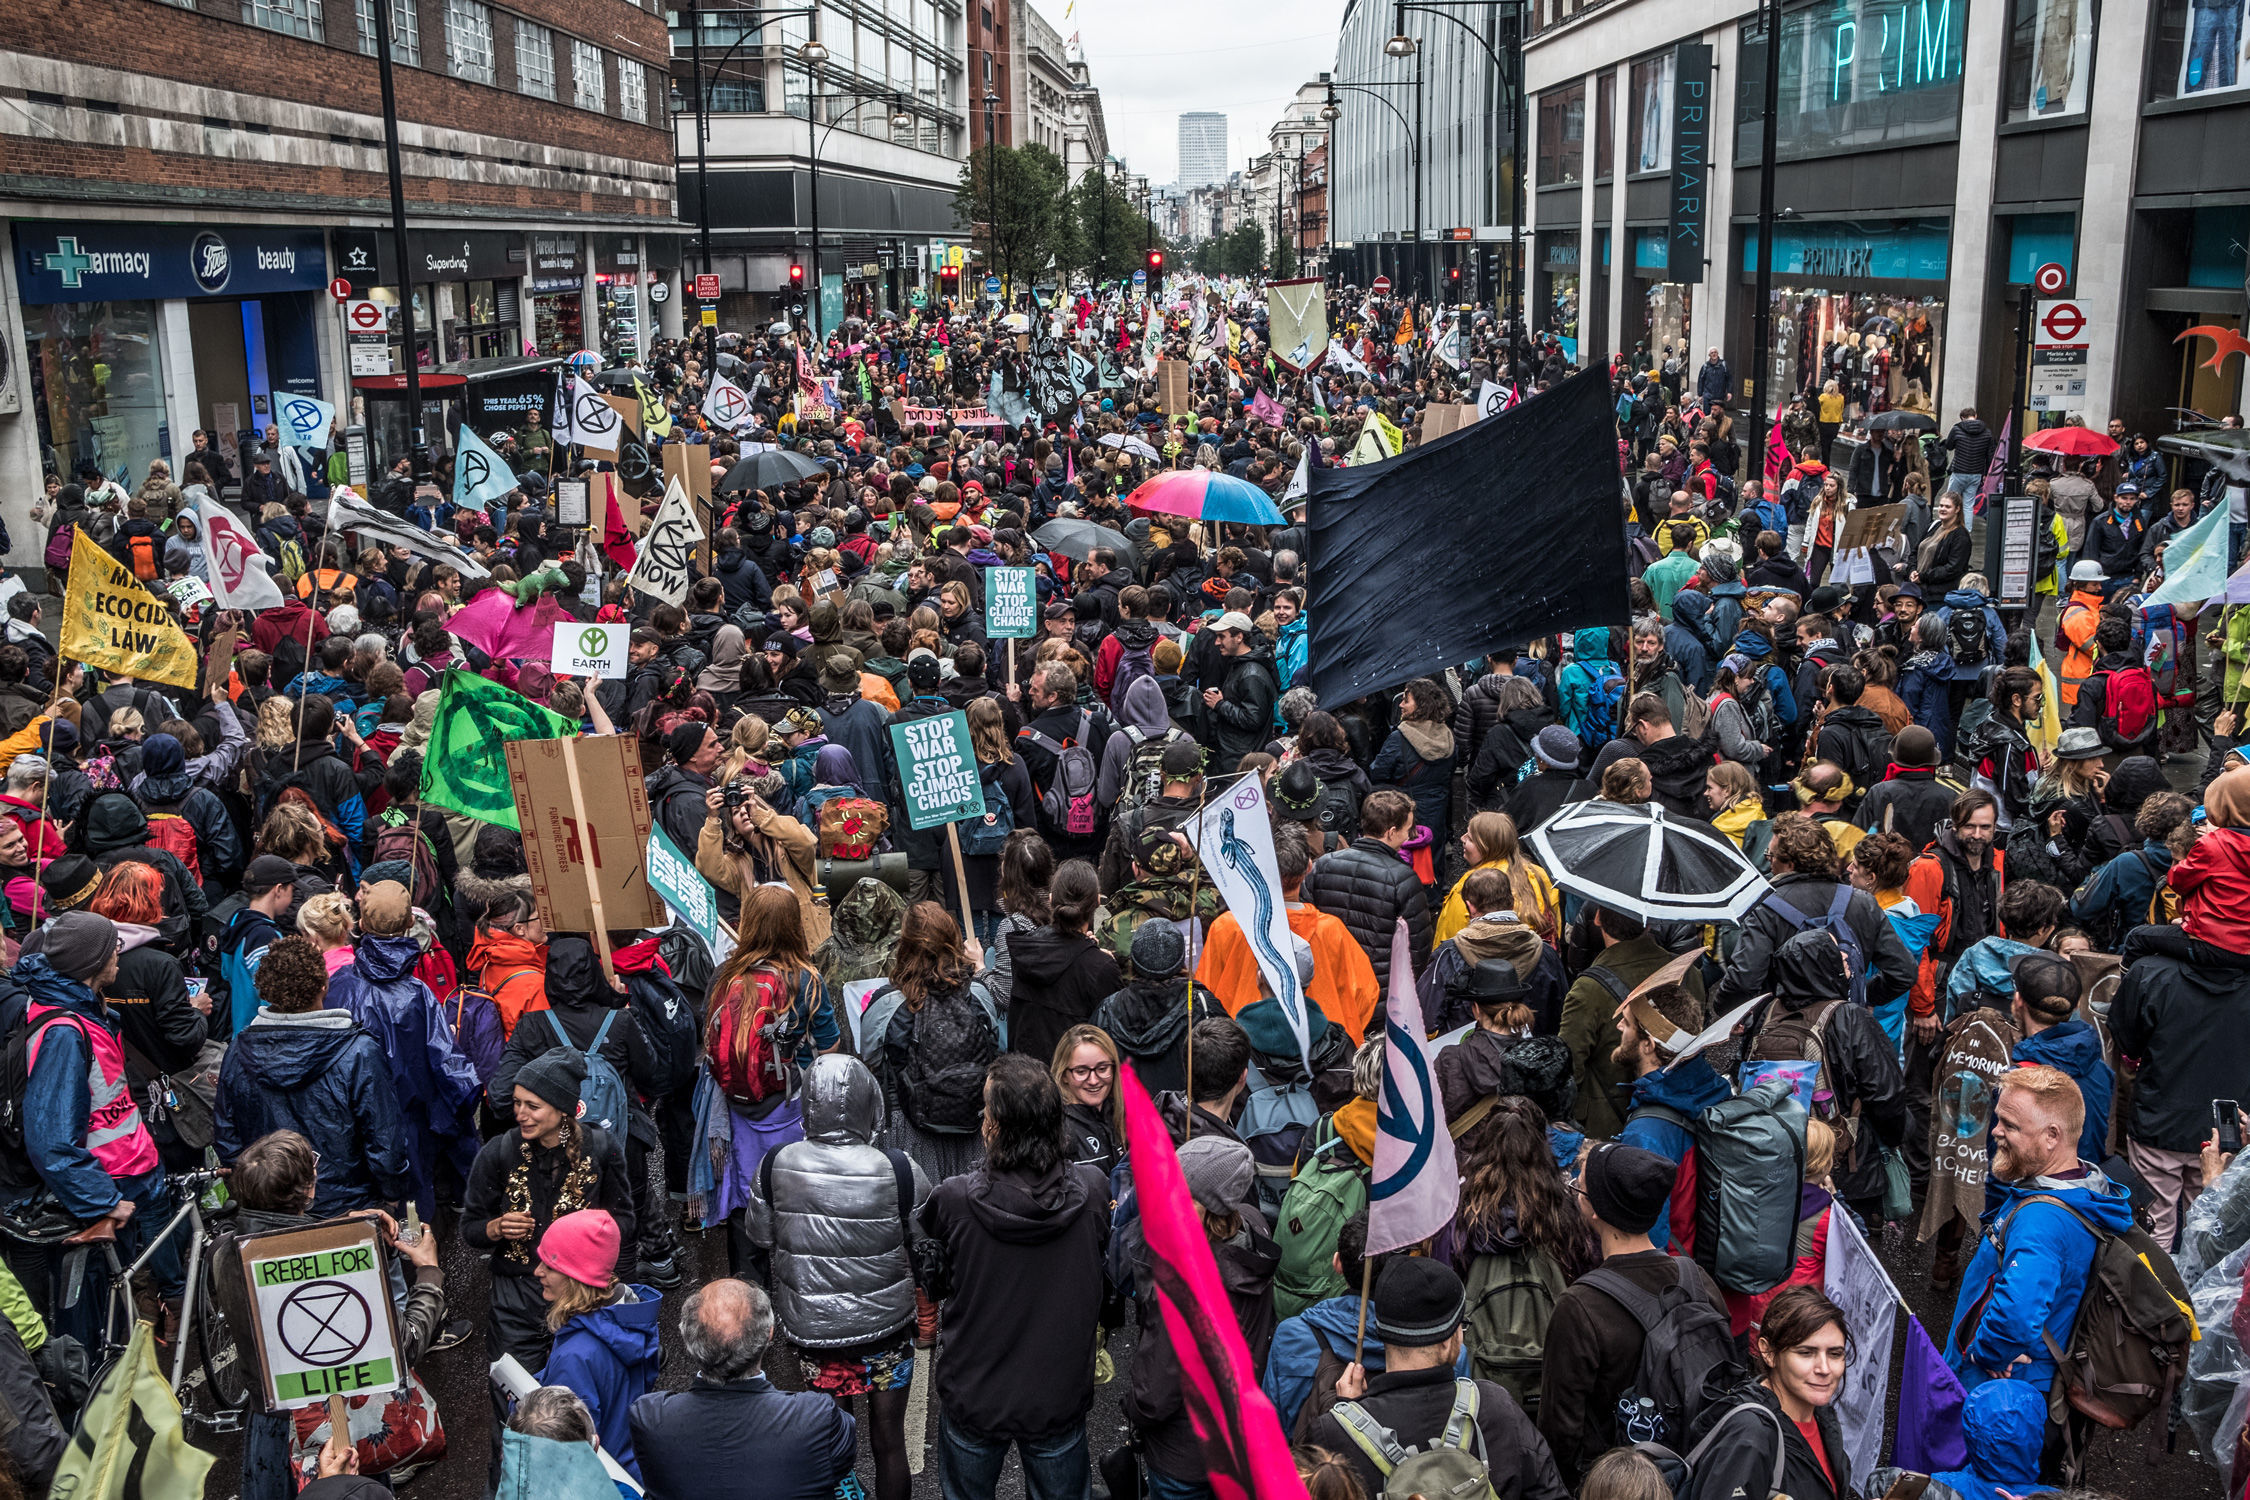 Extinction Rebellion (XR) climate change protesters on Oxford Street, London